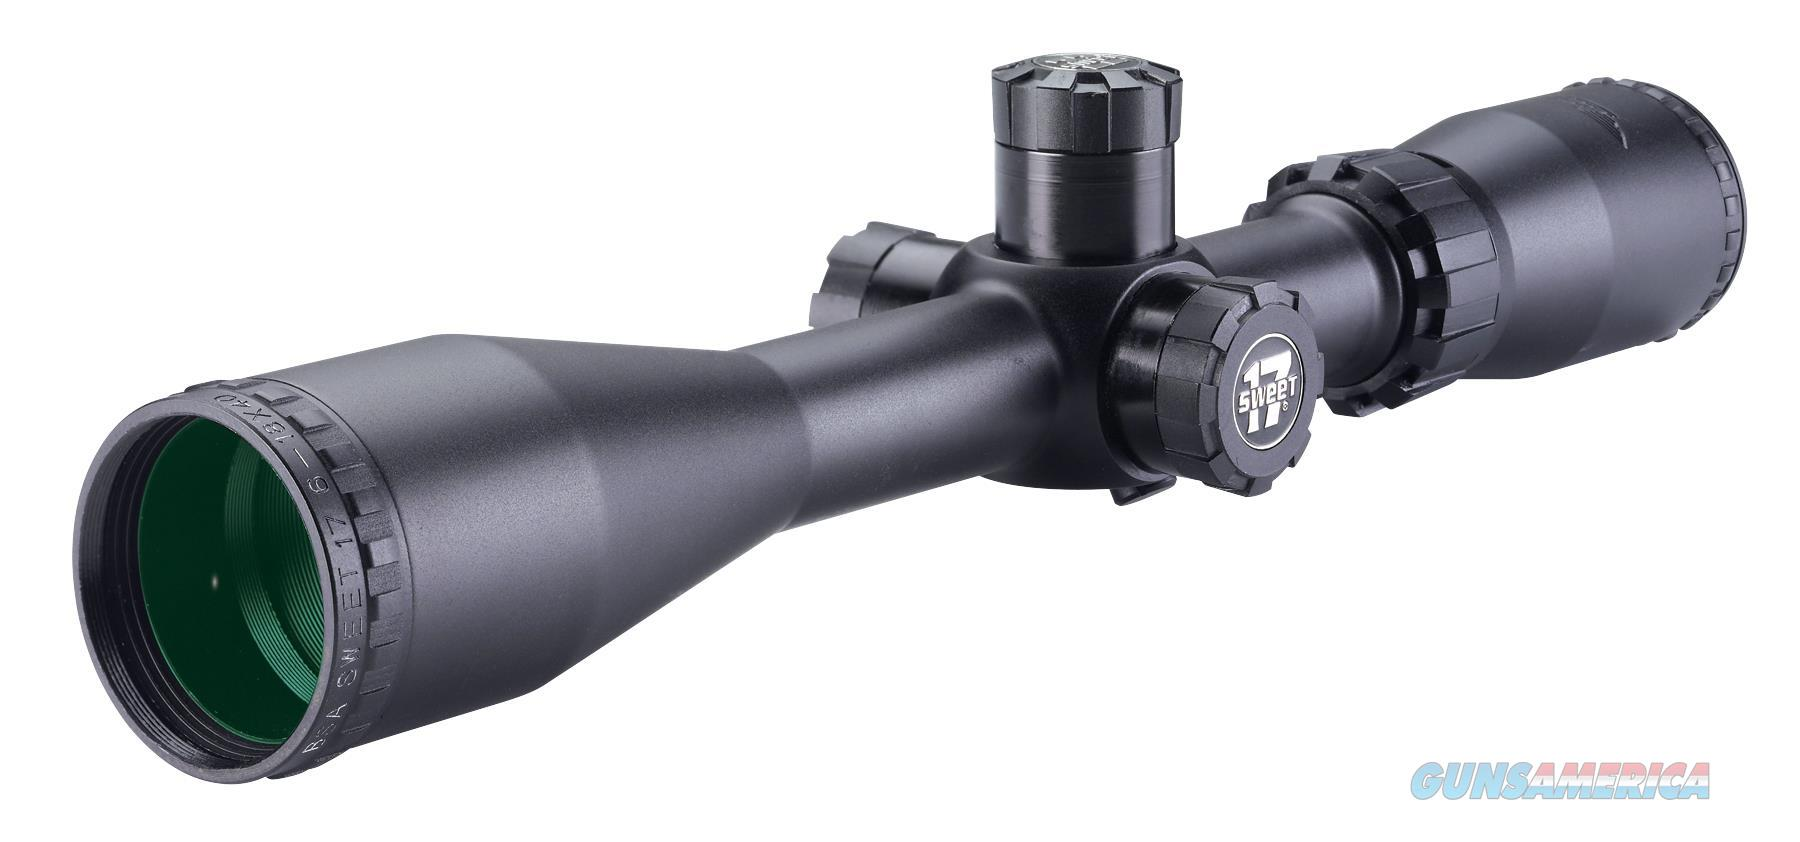 "Bsa S17618x40sp Sweet 6-18X 40Mm Obj 16.6-4.8 Ft @ 100 Yds Fov 1"" Tube Black Duplex S17-618X40SP  Non-Guns > Scopes/Mounts/Rings & Optics > Rifle Scopes > Variable Focal Length"